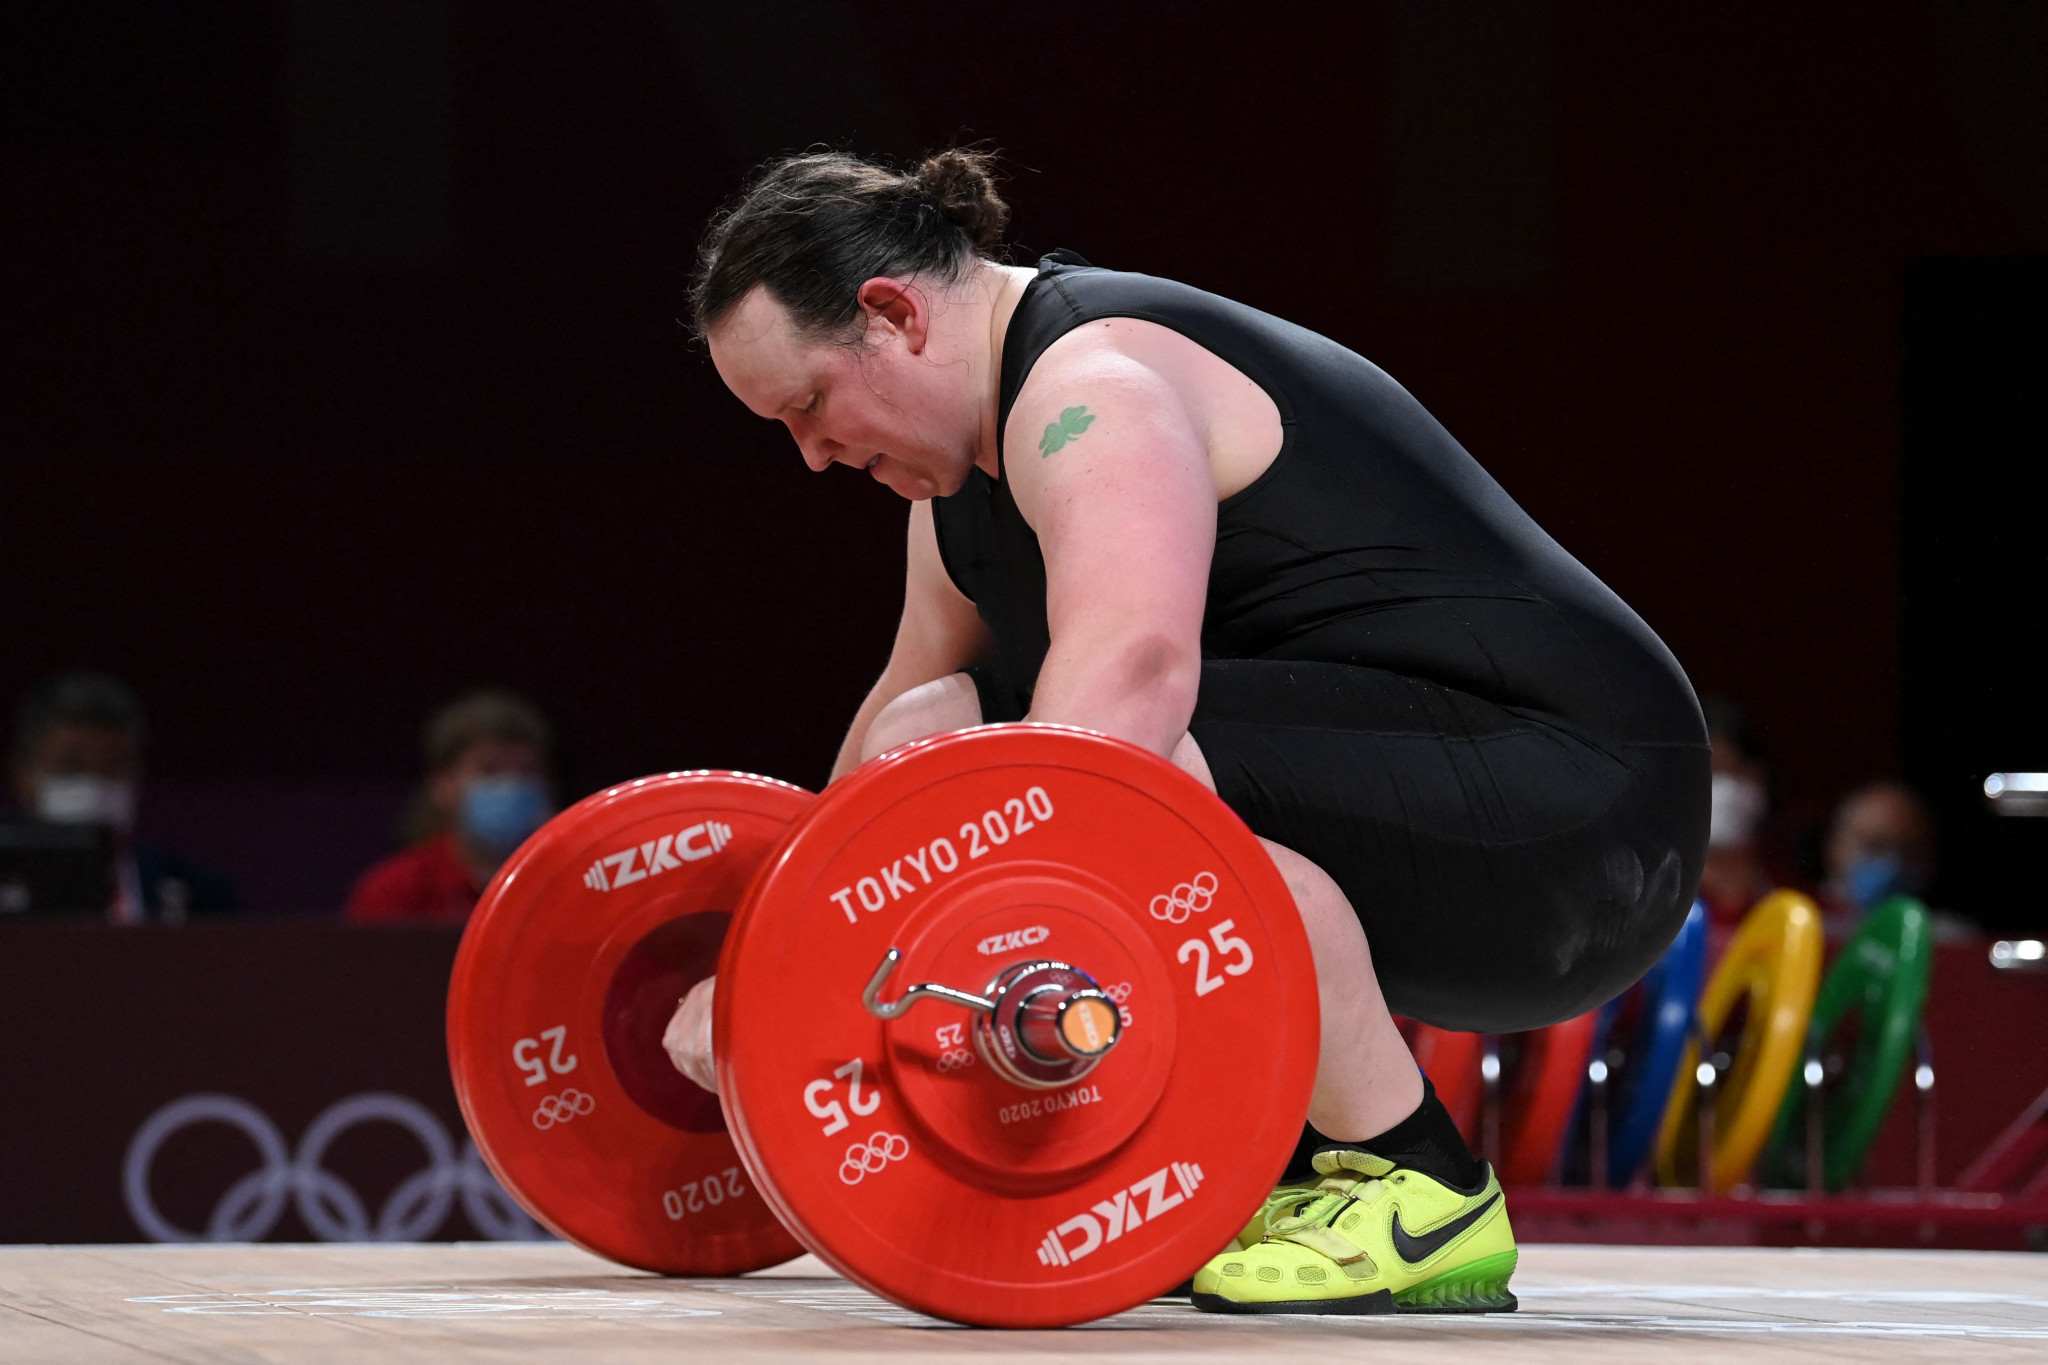 Laurel Hubbard makes history but no lifts as Olympic appearance ends prematurely